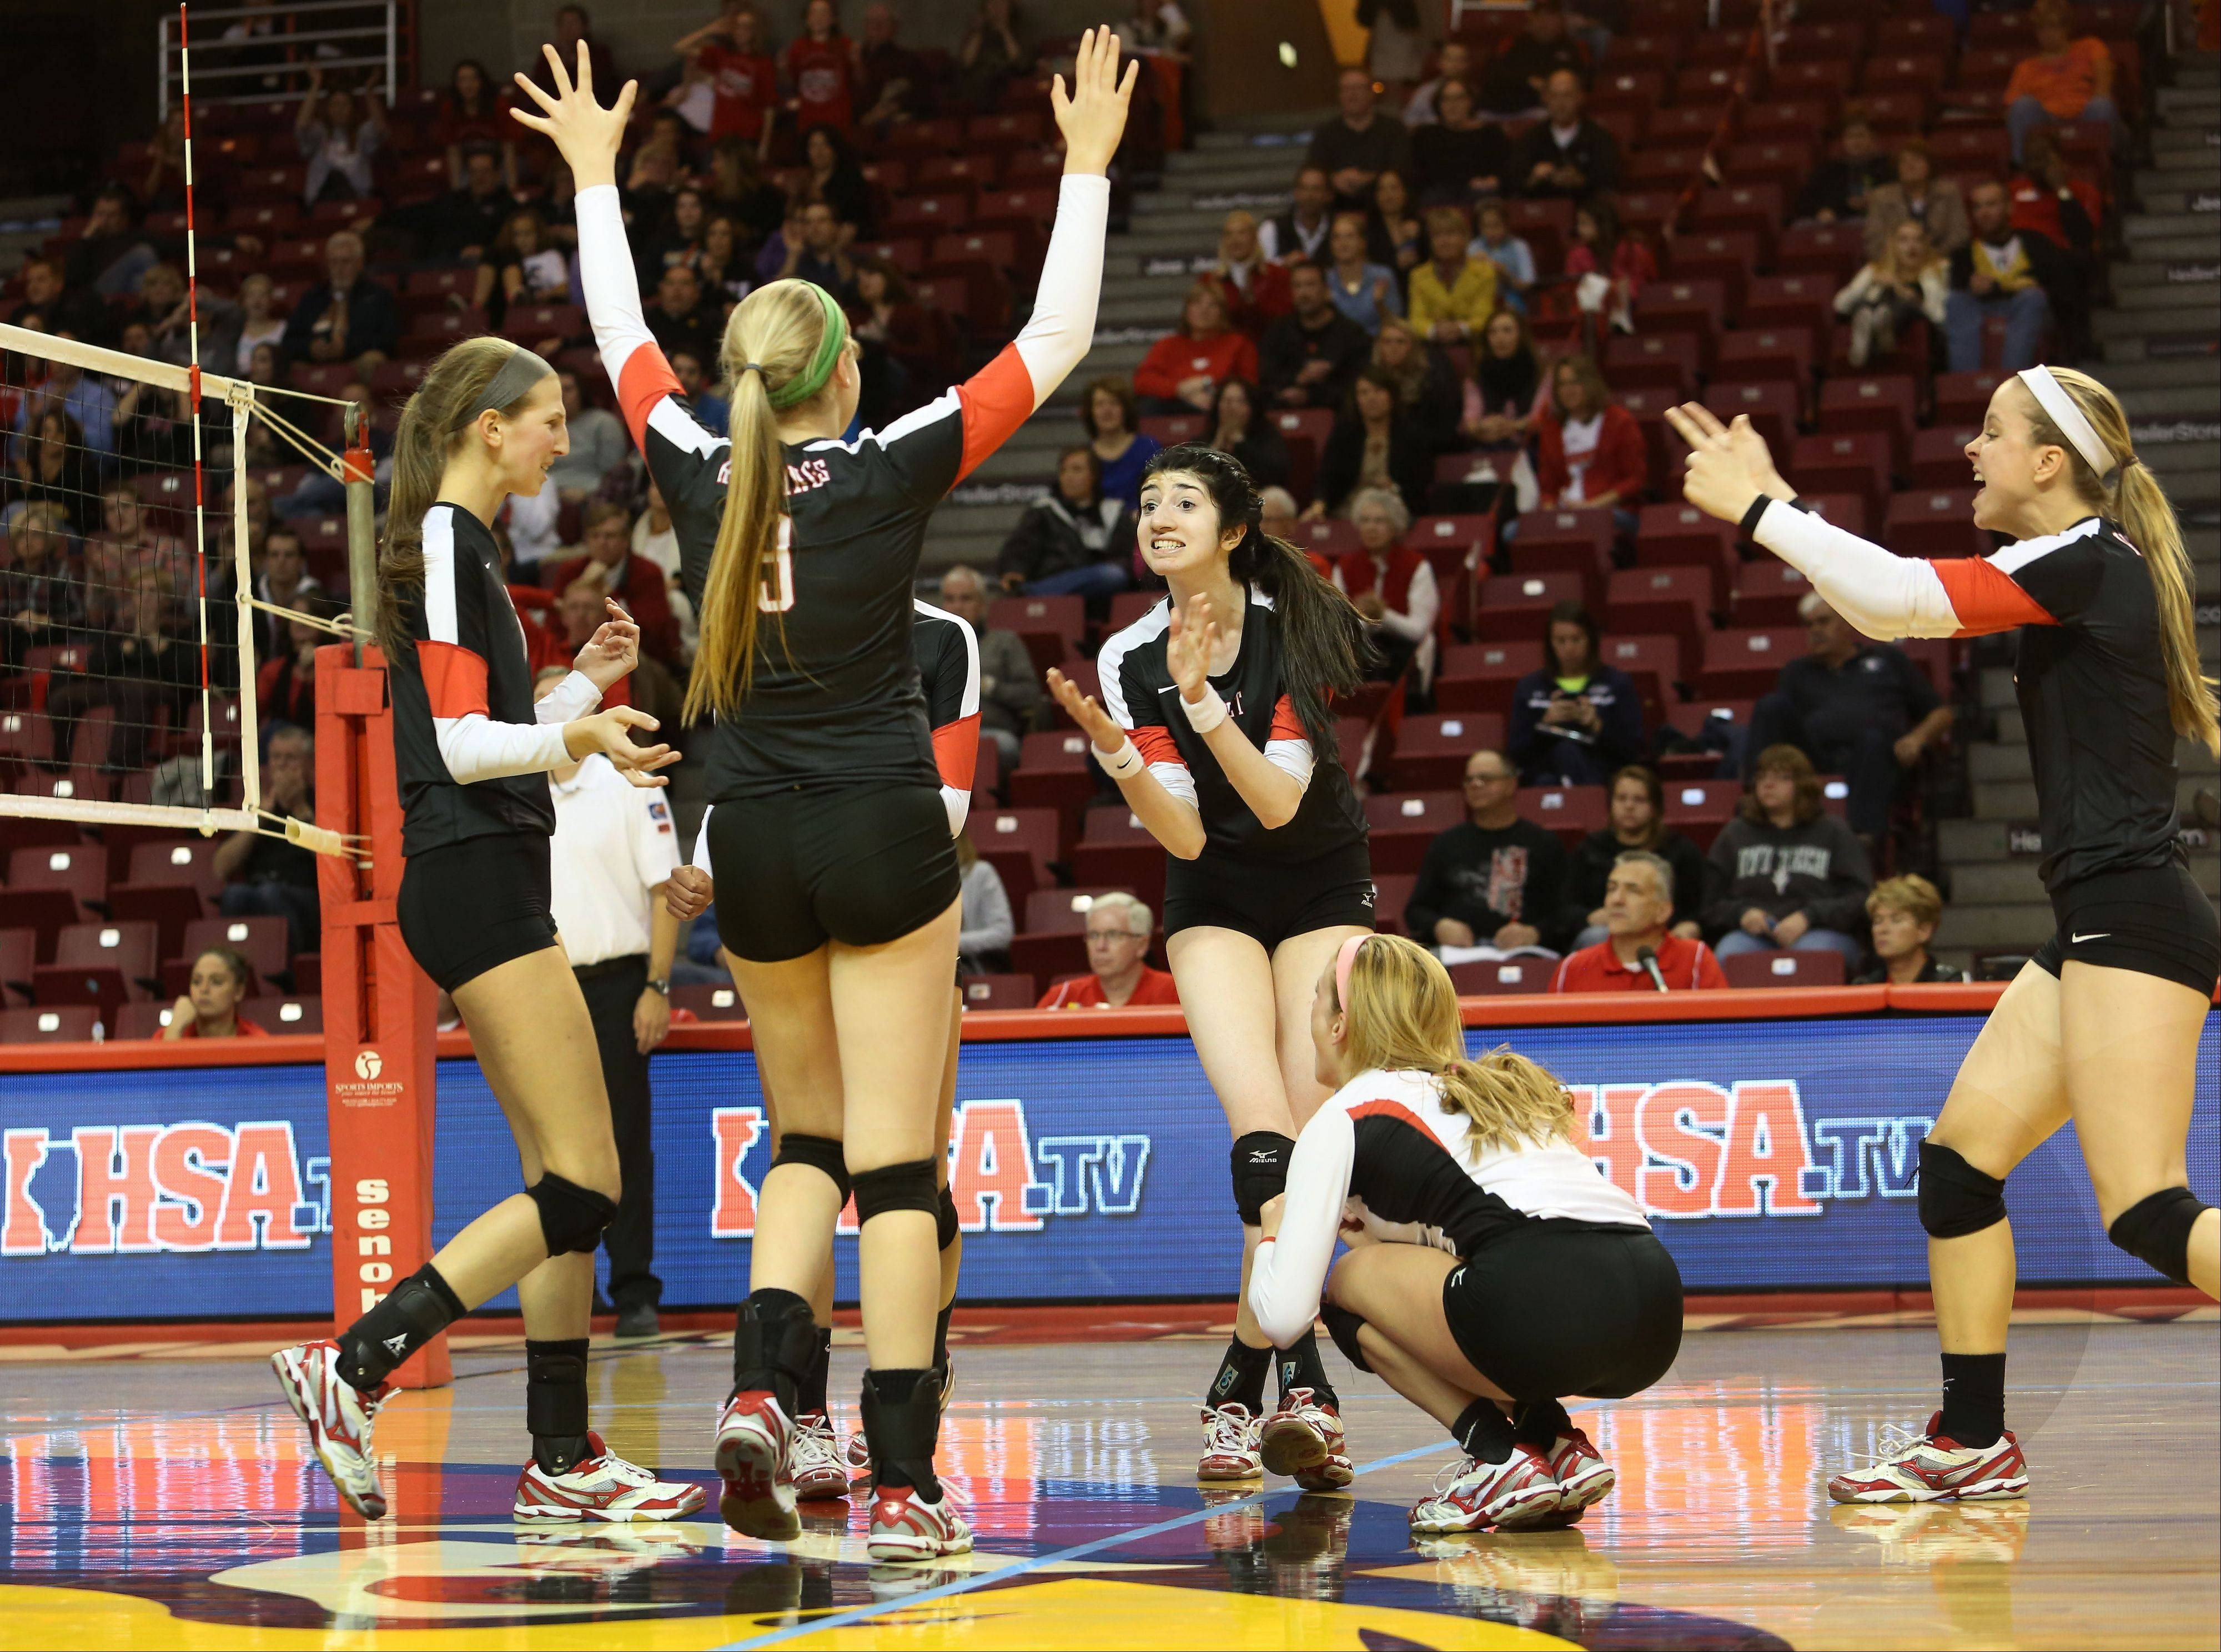 Benet reacts to a point won in its win over Crystal Lake South in Class 4A state girls volleyball action on Friday in Normal.